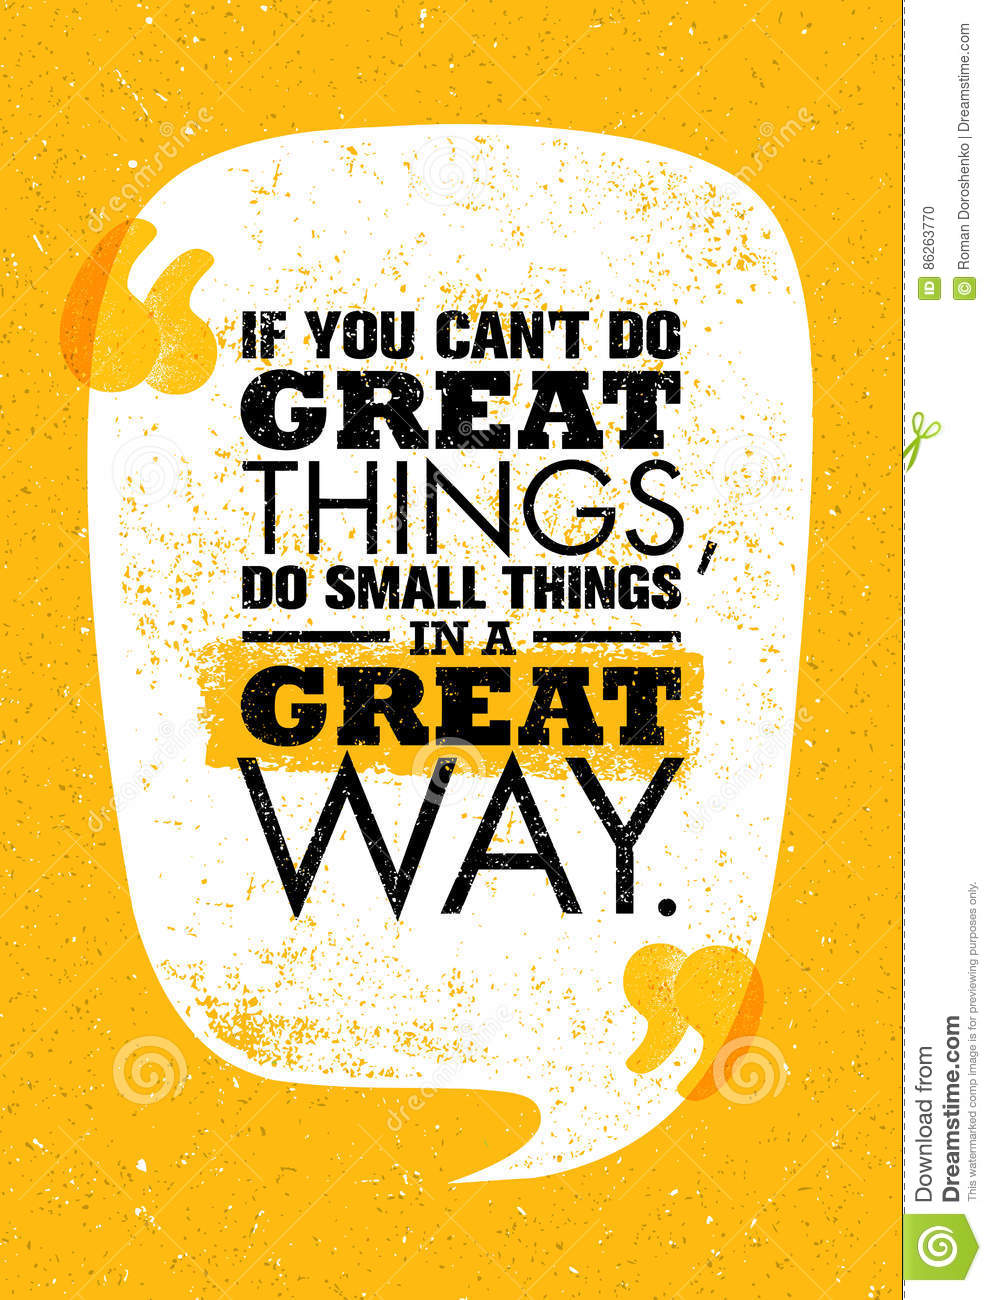 If You Can`t Do Great Things, Do Small Things In A Great